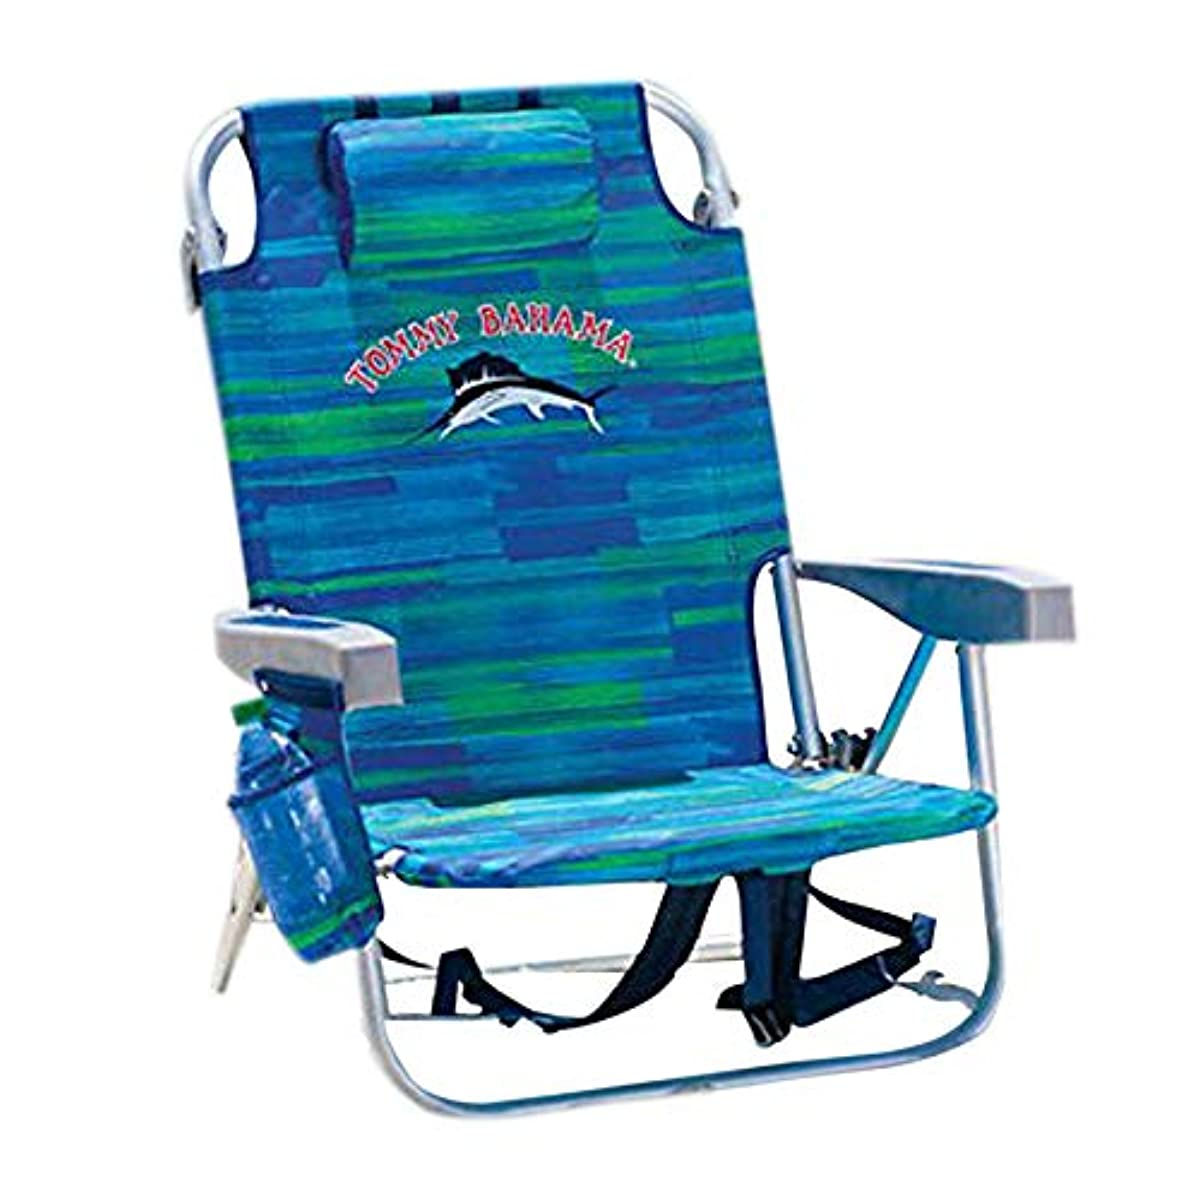 DESCRIPTION. This Tommy Bahama Backpack Beach Chair ...  sc 1 st  eBay & Tommy Bahama Backpack Cooler Chair with Storage Pouch and Towel Bar ...